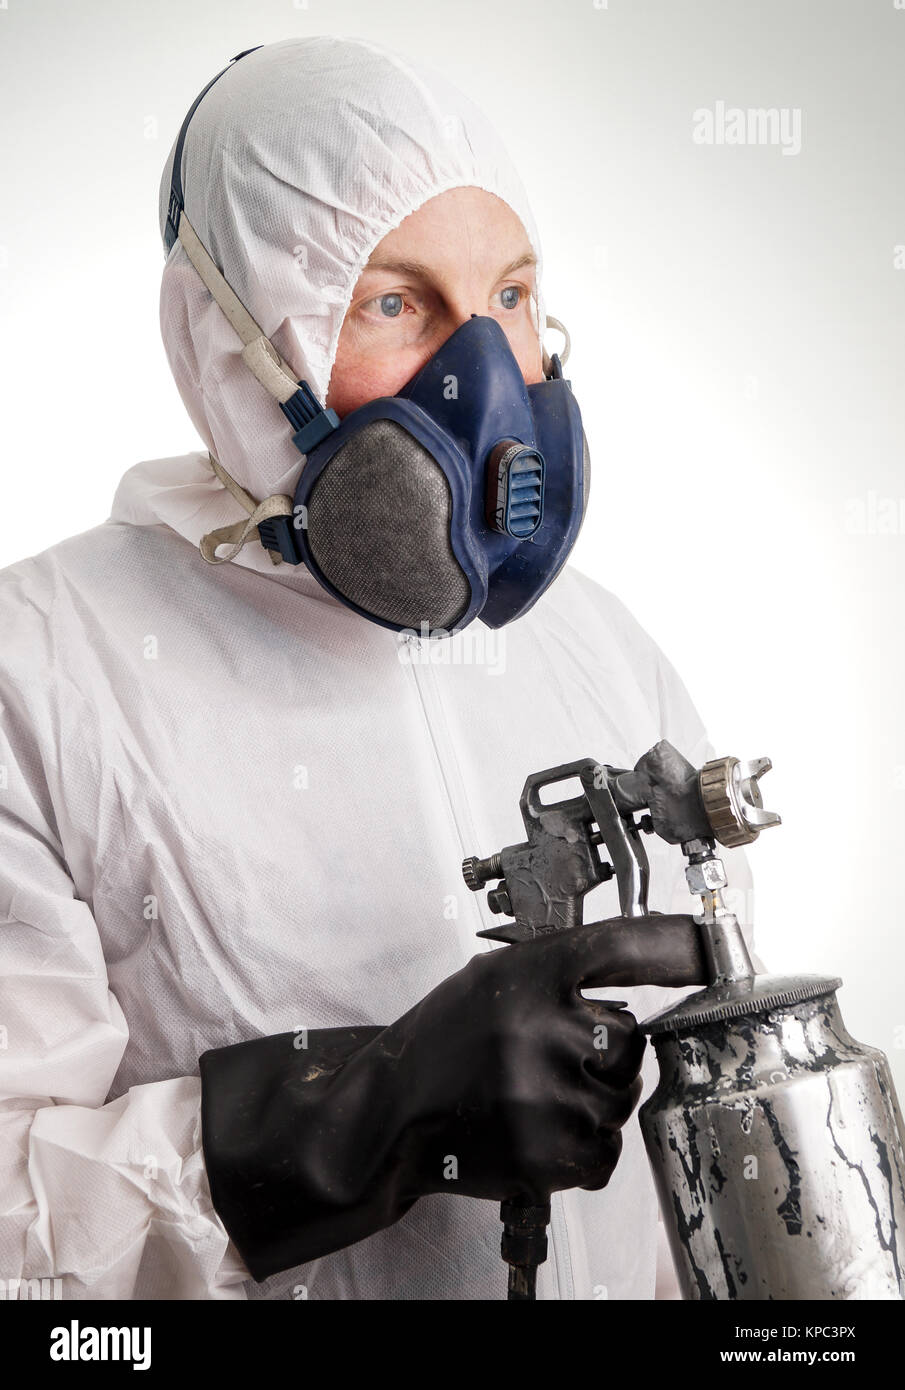 Man in protective suit - Stock Image